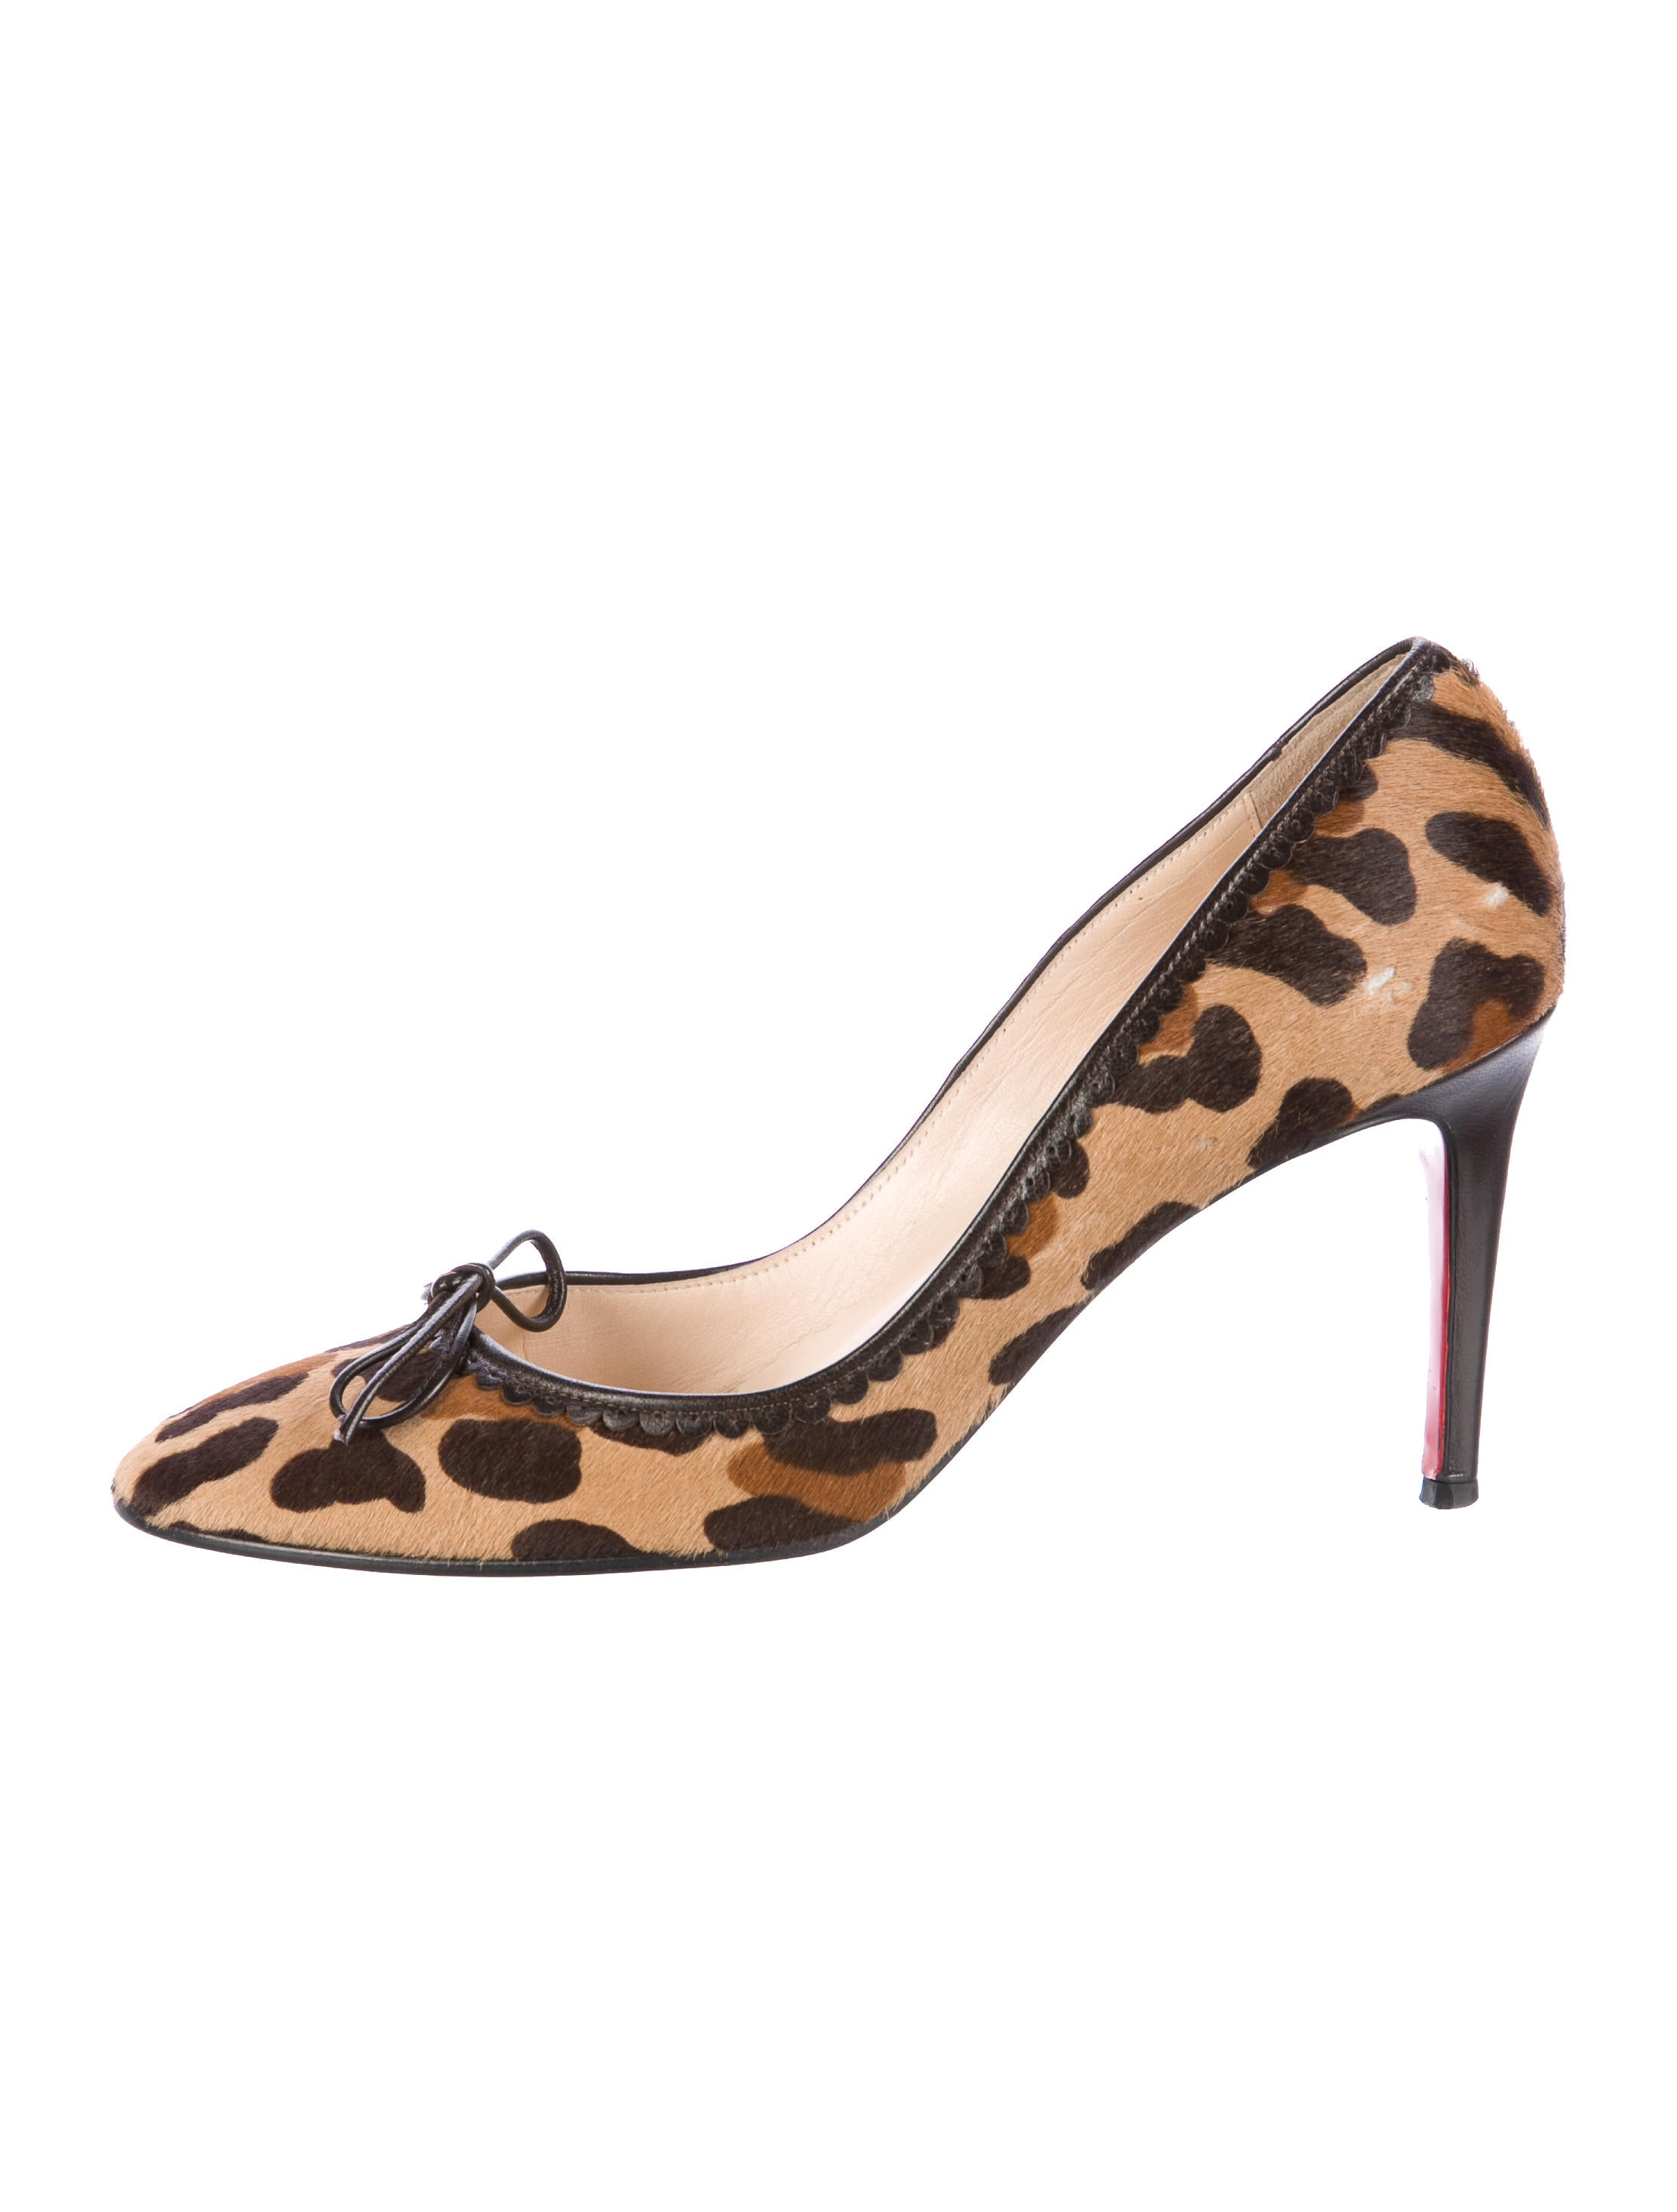 Christian Louboutin Ponyhair Round-Toe Pumps outlet locations for sale vg5MgRBlS